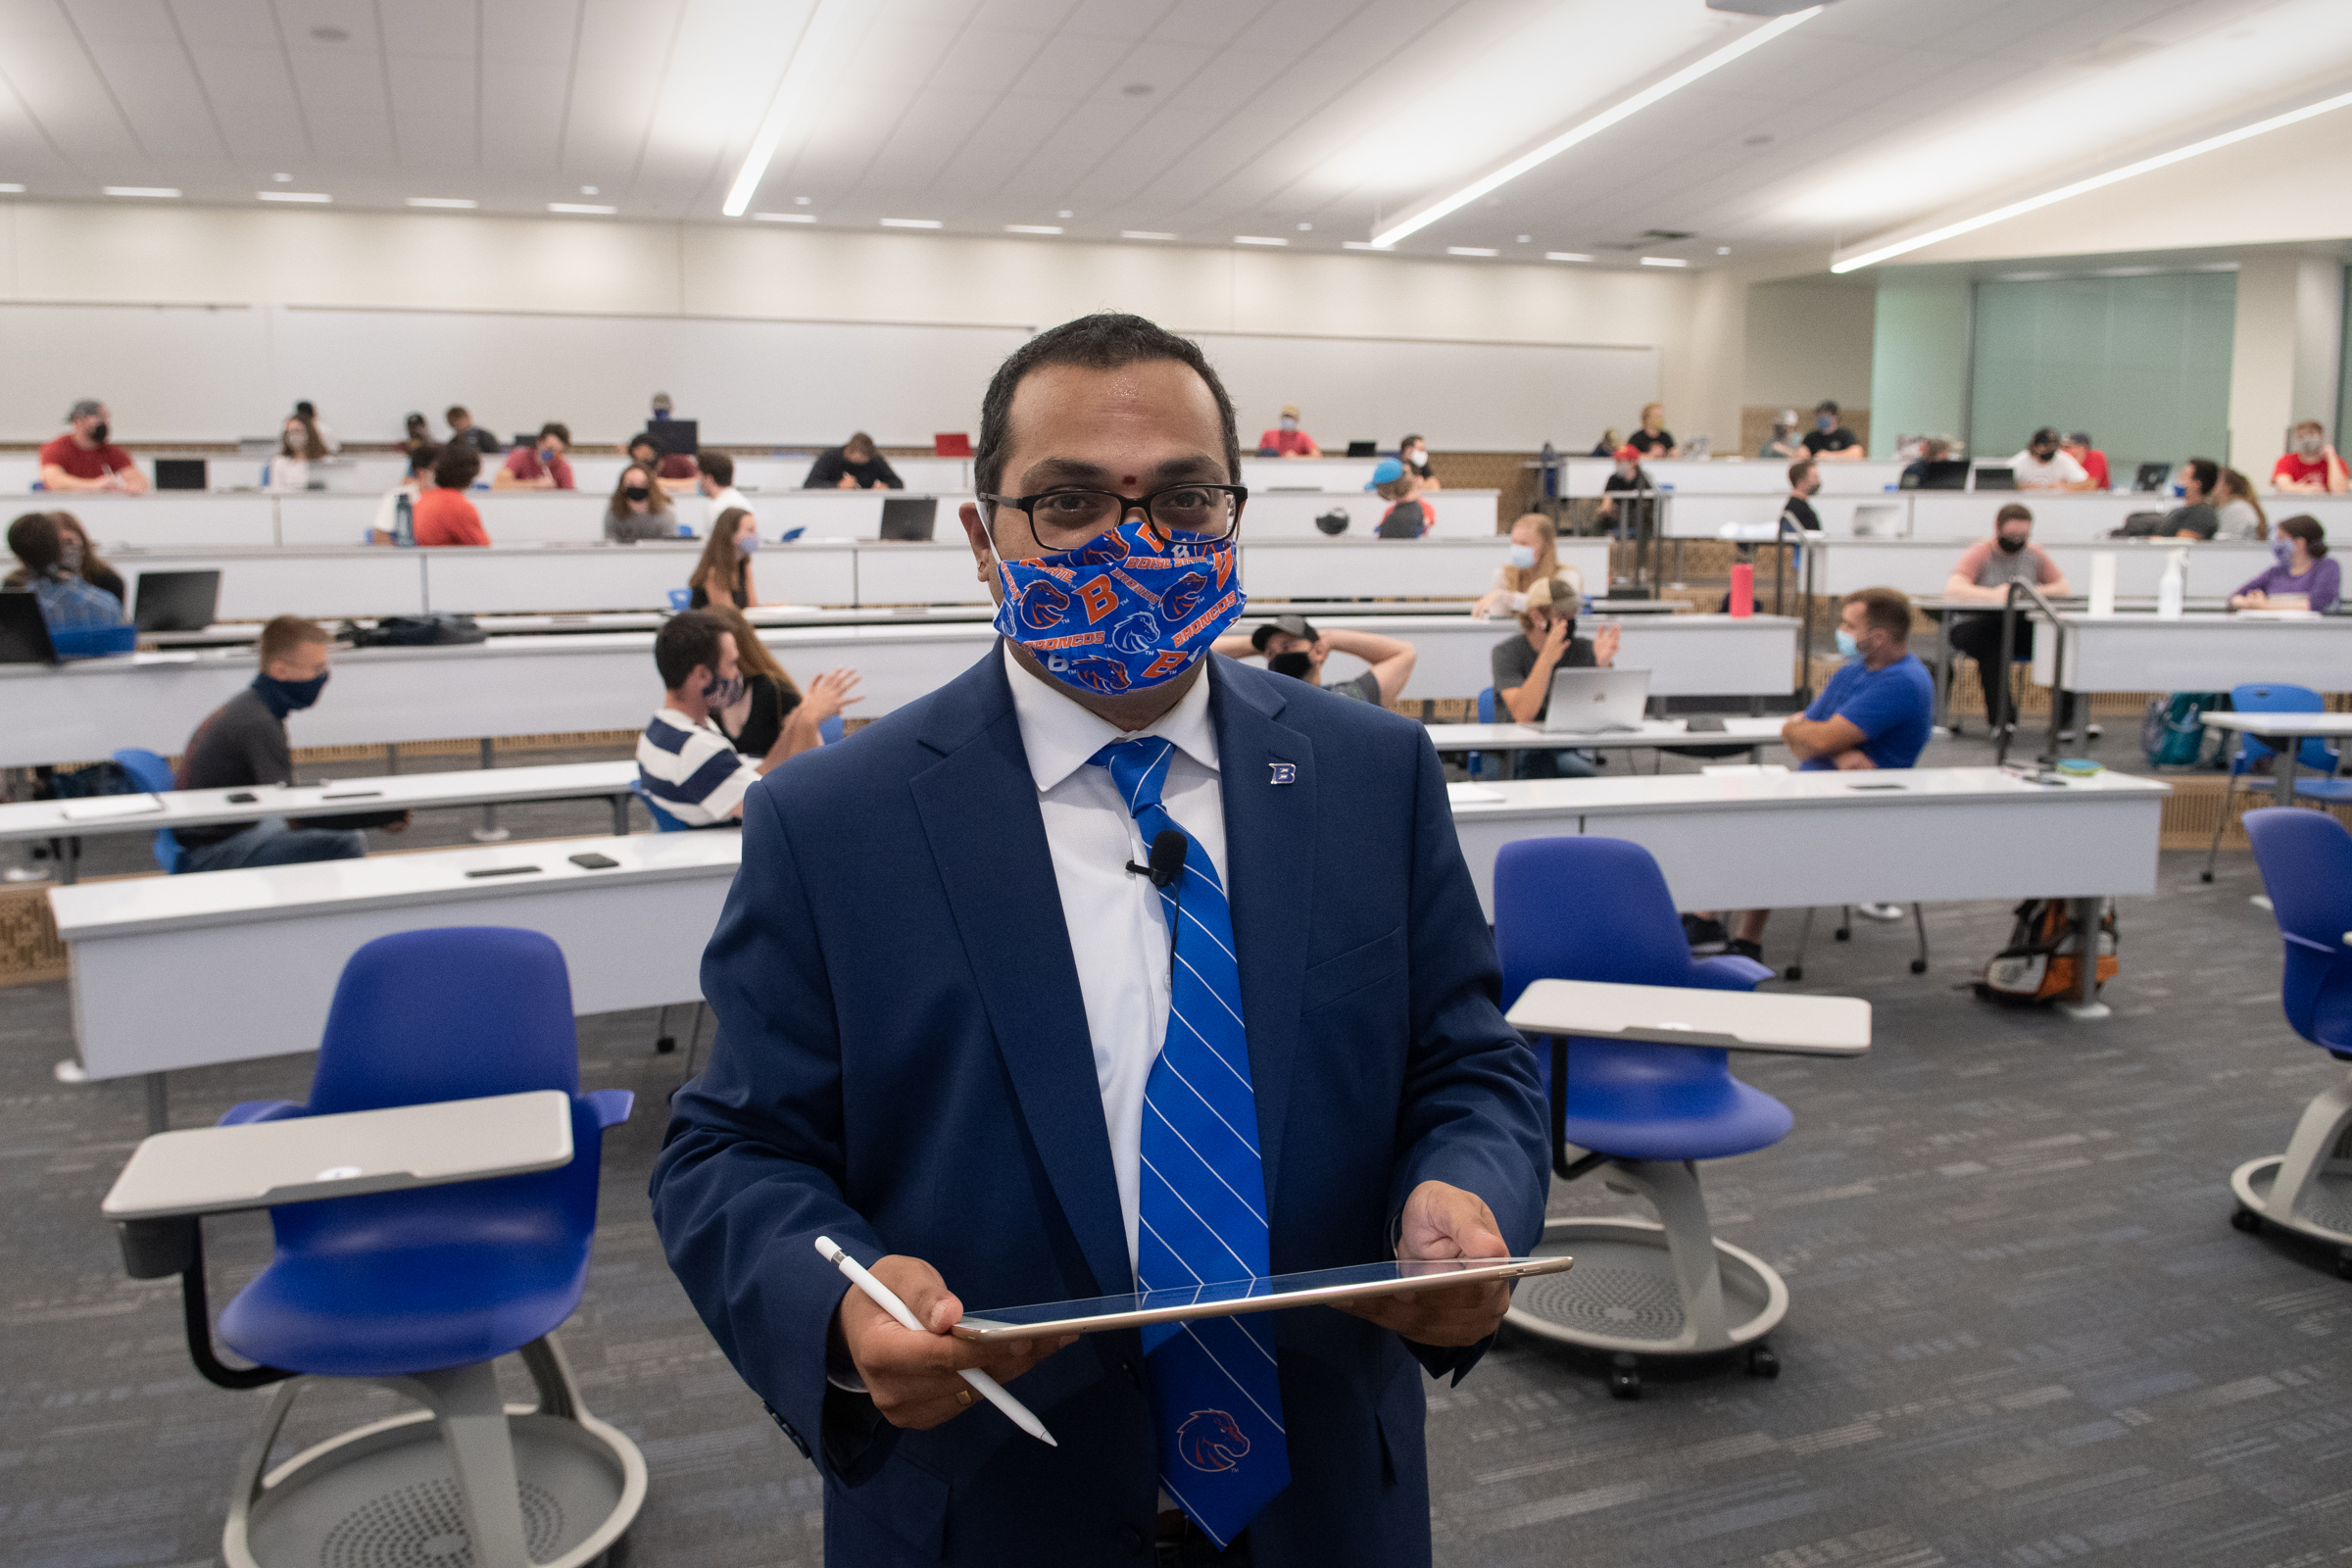 krishna wears mask, his back to auditorium full of socially distanced, mask-wearing students